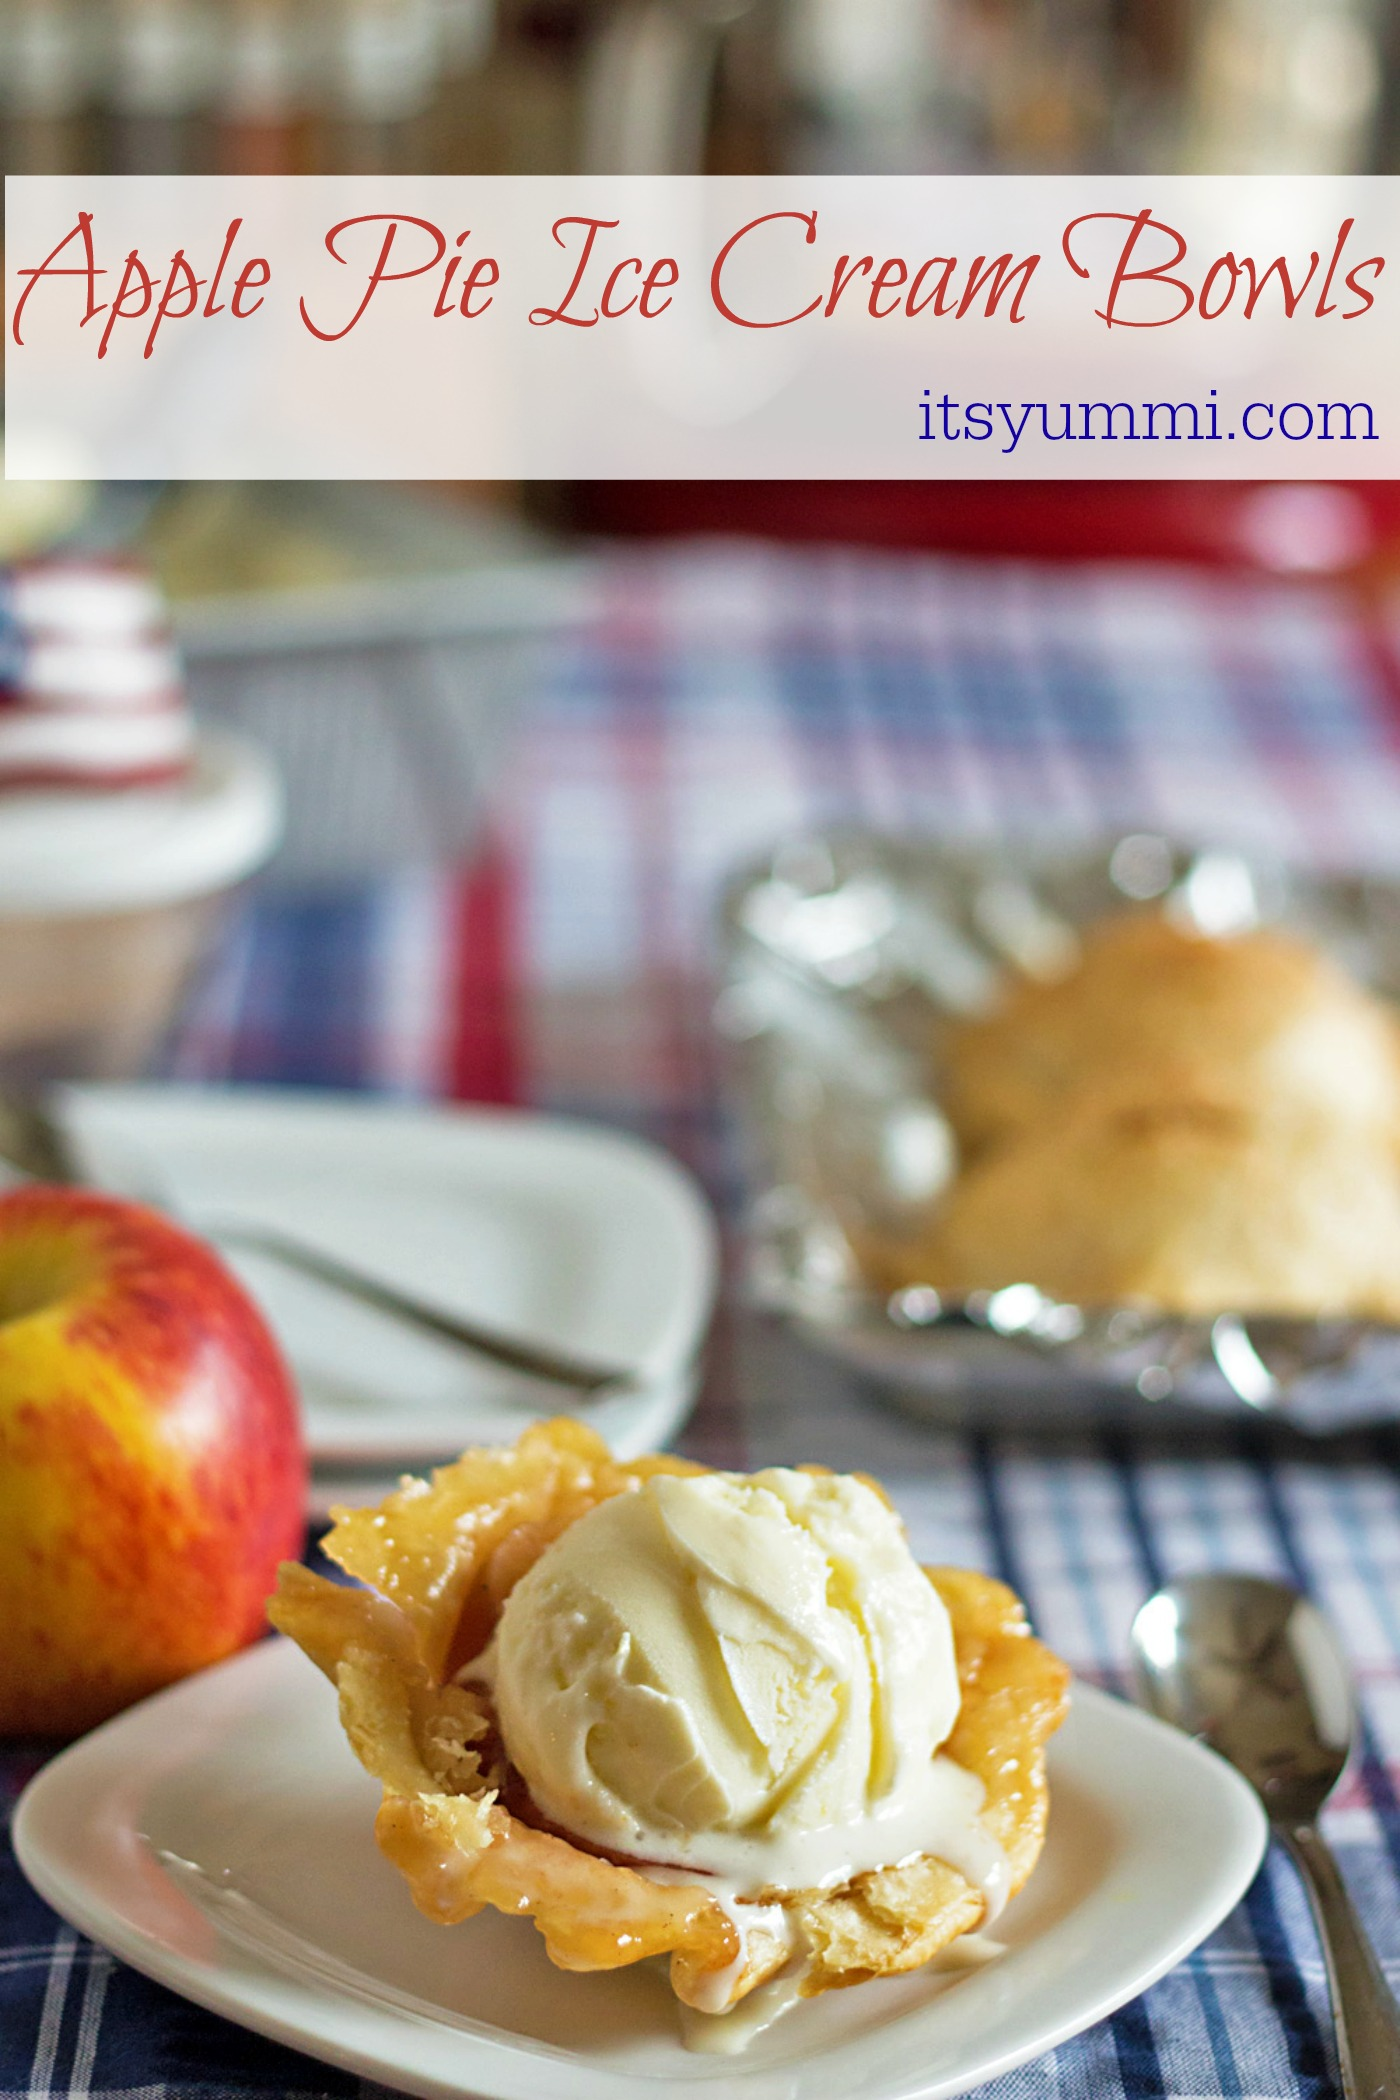 Apple Pie Ice Cream Bowls from ItsYummi.com